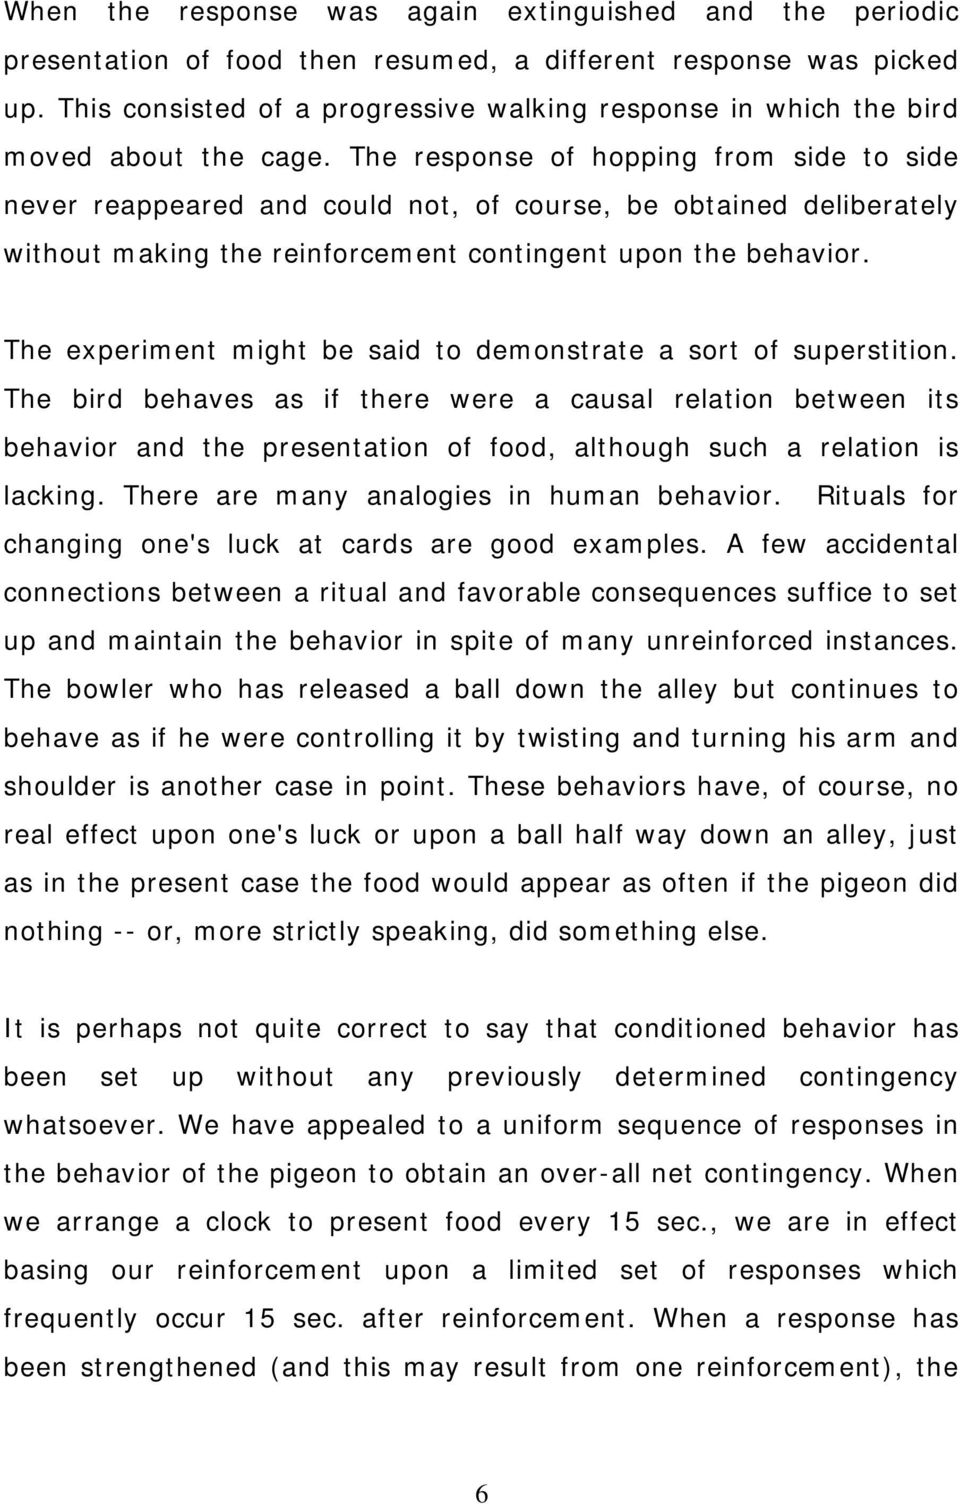 The response of hopping from side to side never reappeared and could not, of course, be obtained deliberately without making the reinforcement contingent upon the behavior.